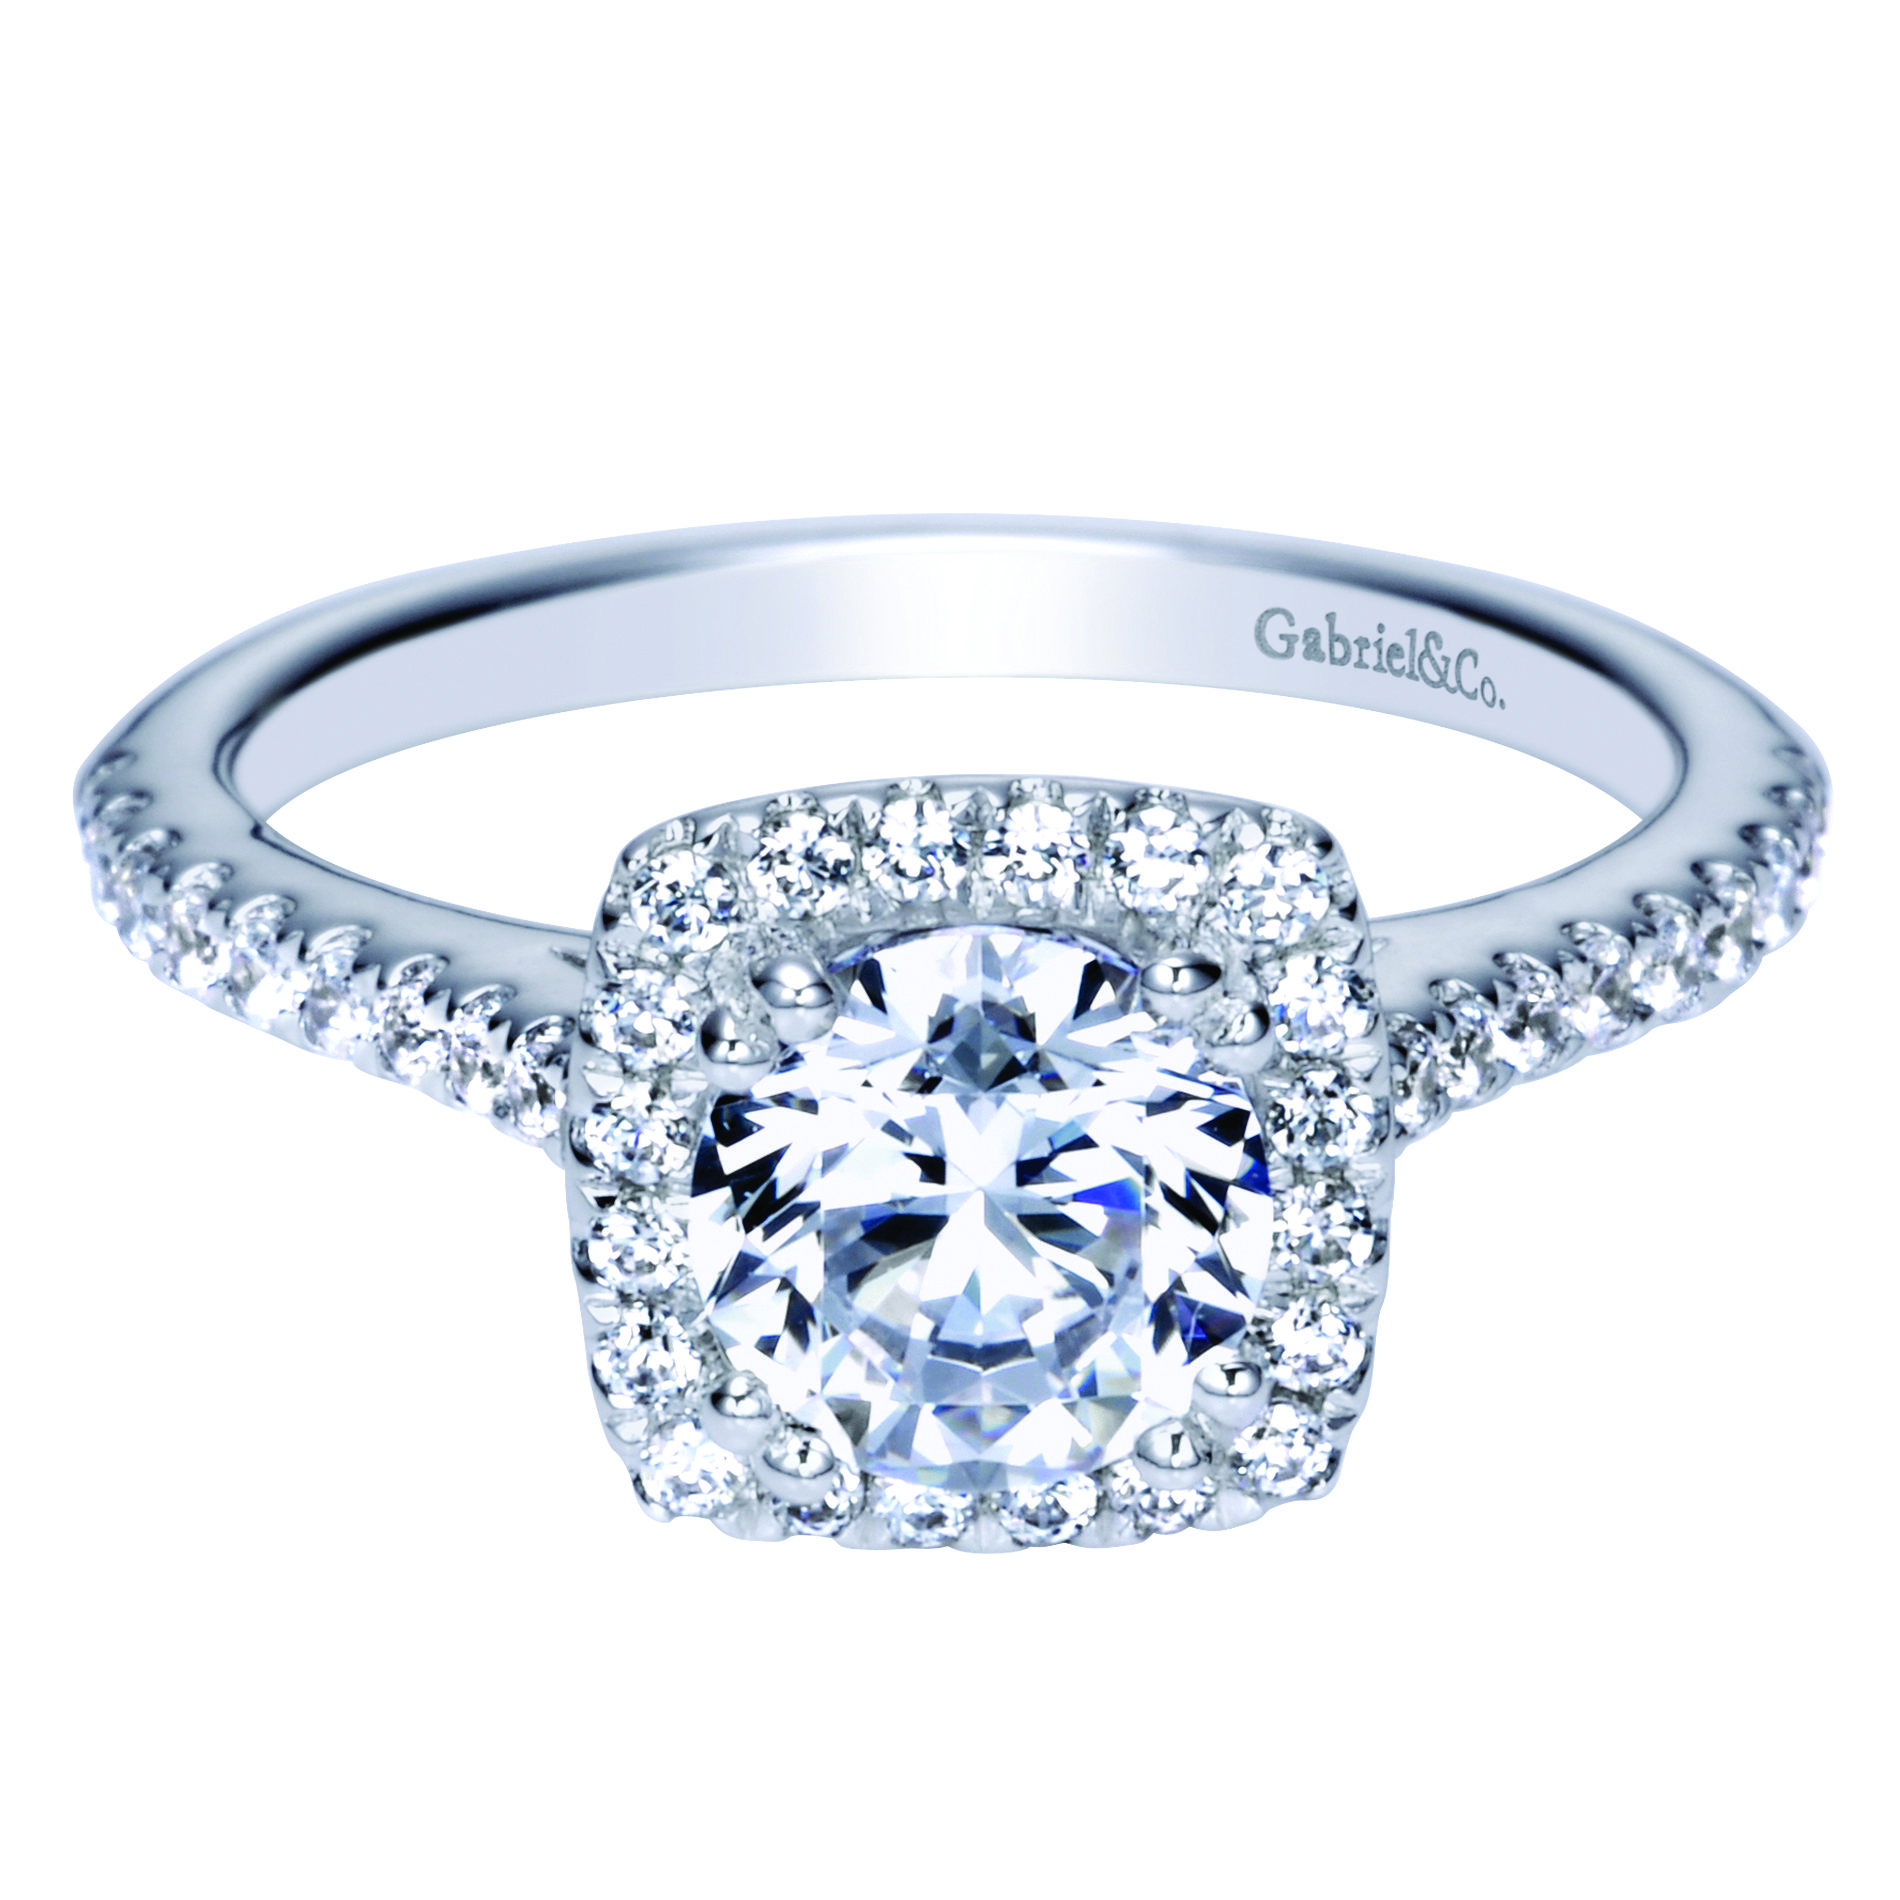 Gabriel diamond engagement ring at Carreras Jewelers Richmond VA